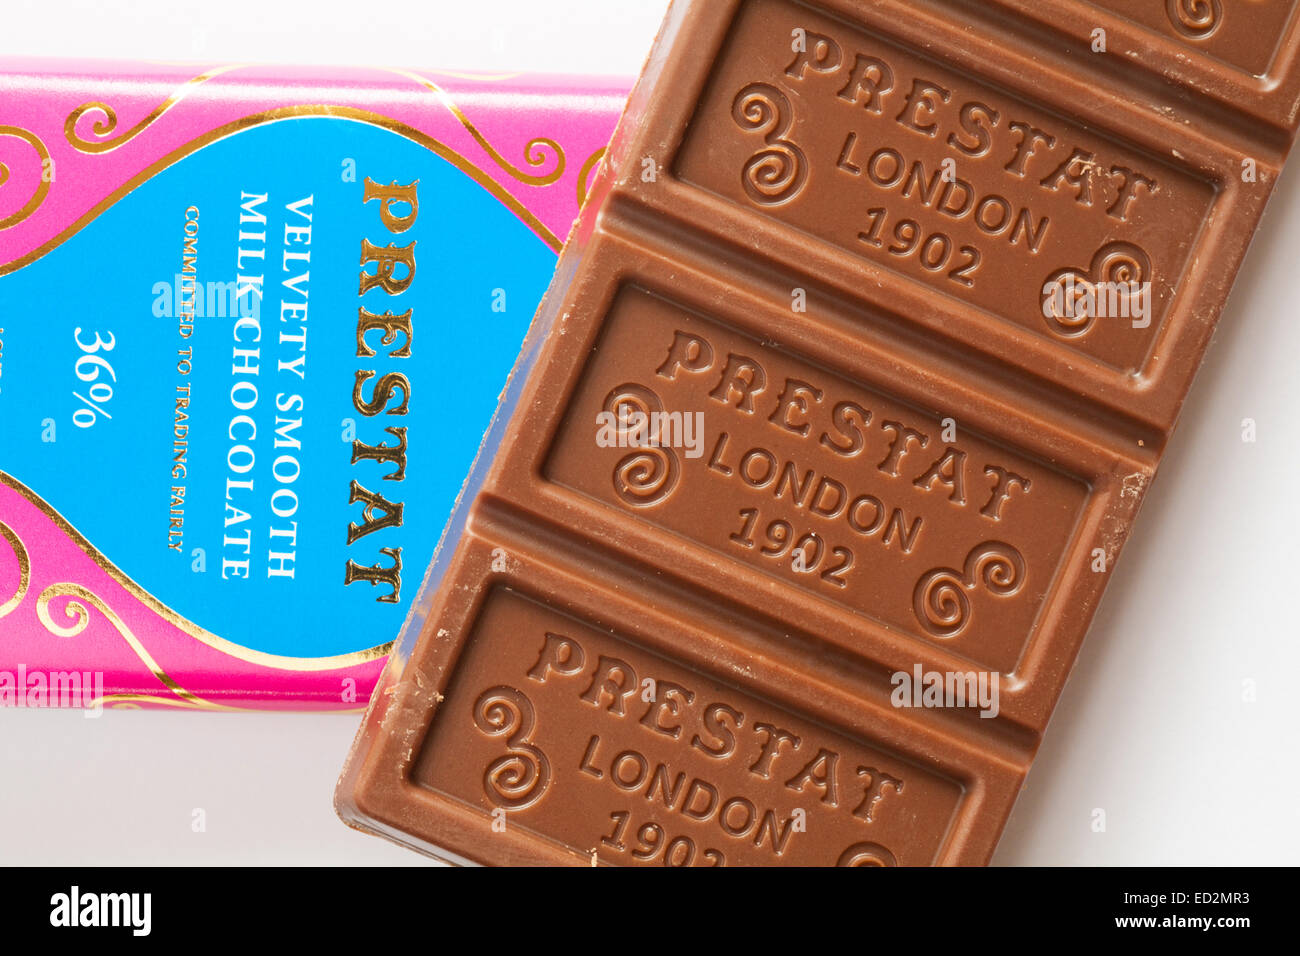 Prestat velvety smooth milk chocolate, London 1902 removed from wrapper set on white background - Stock Image